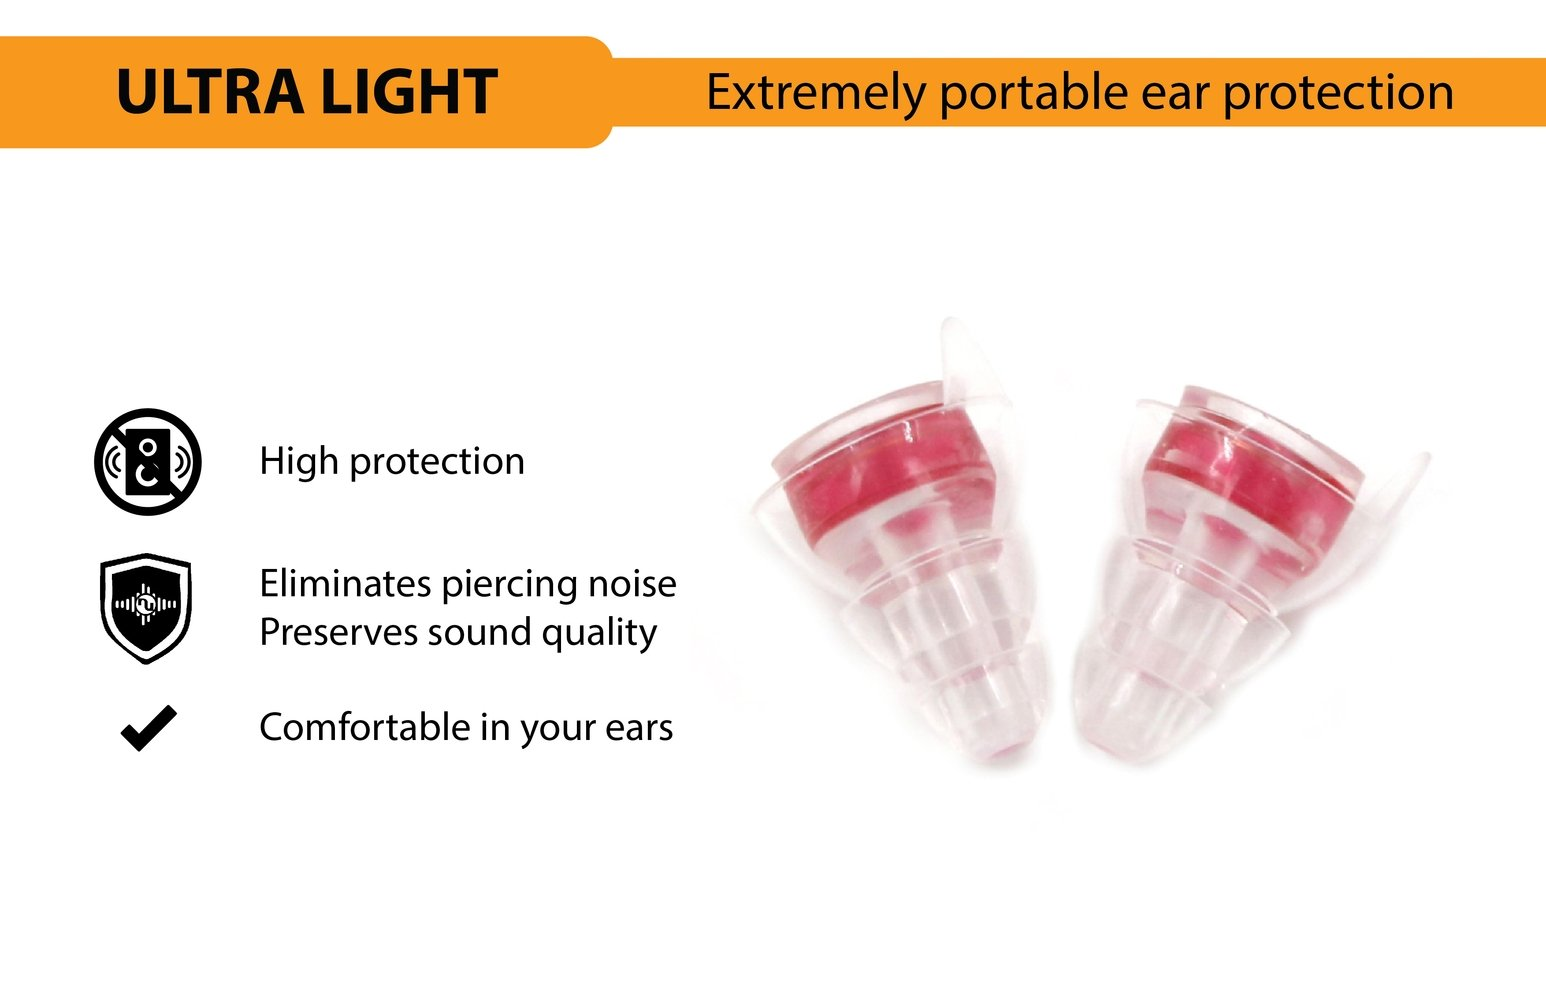 NU High Fidelity Ear Plugs for Musicians, Concerts, Motorcycles, Travel, Holiday and Live Events with Portable Aluminum Case (High Protection) by NU (Image #3)